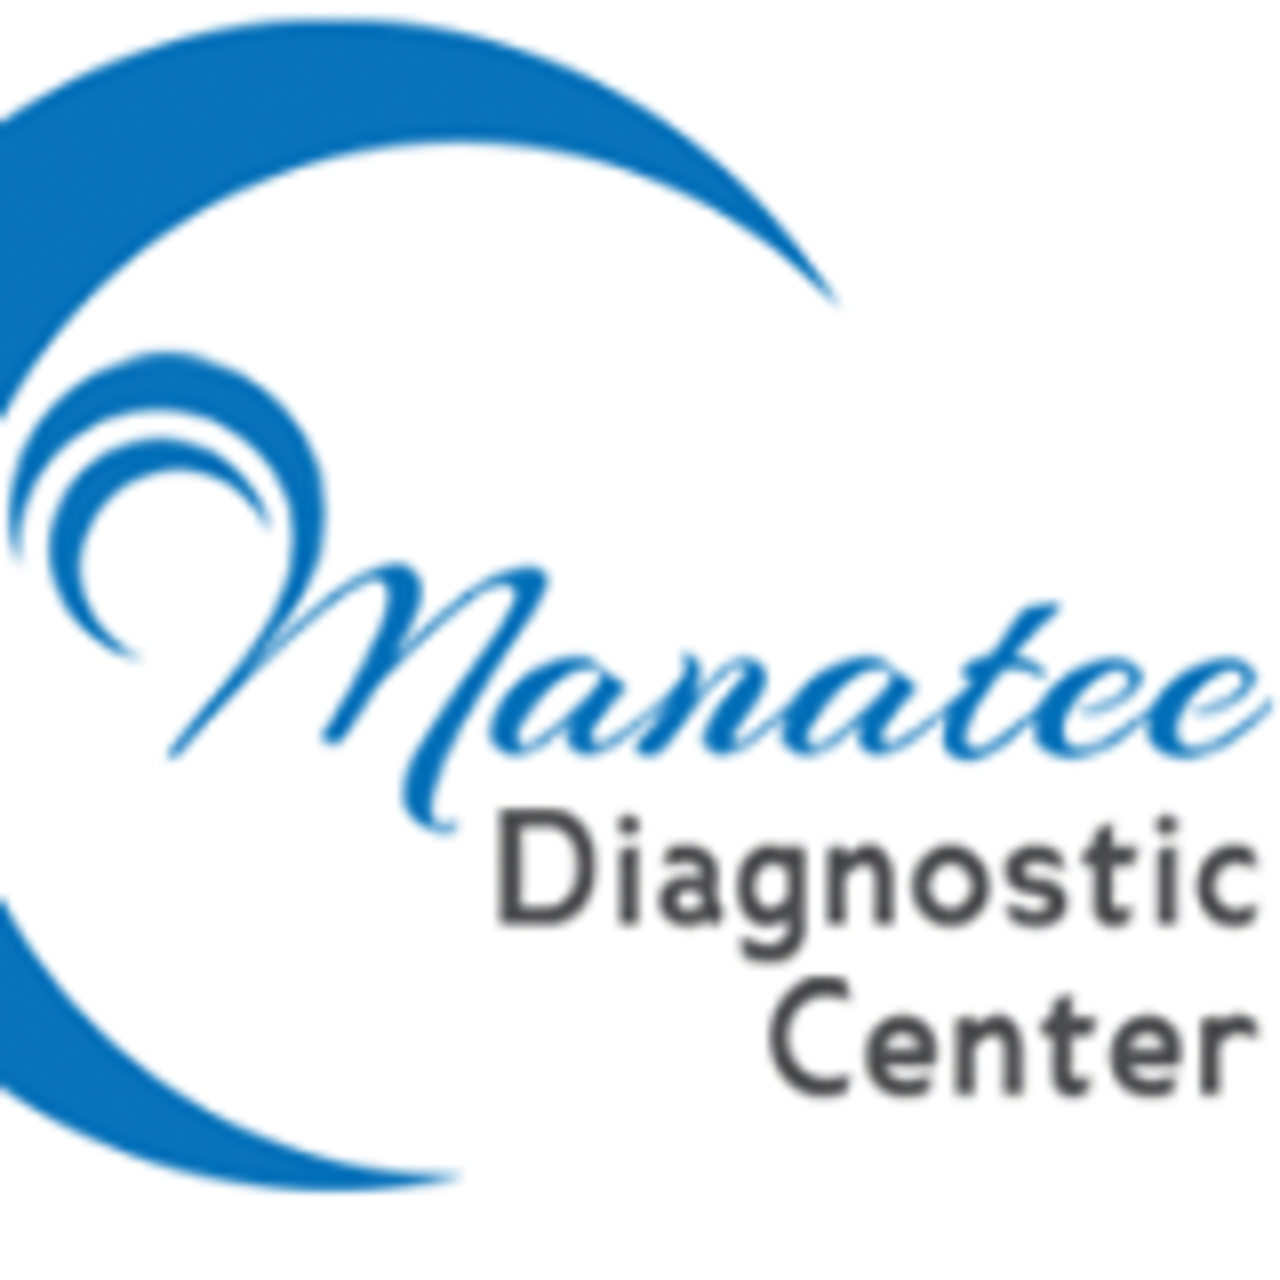 Manatee Diagnostic Center - Medical - Health Care Facilities in Bradenton FL